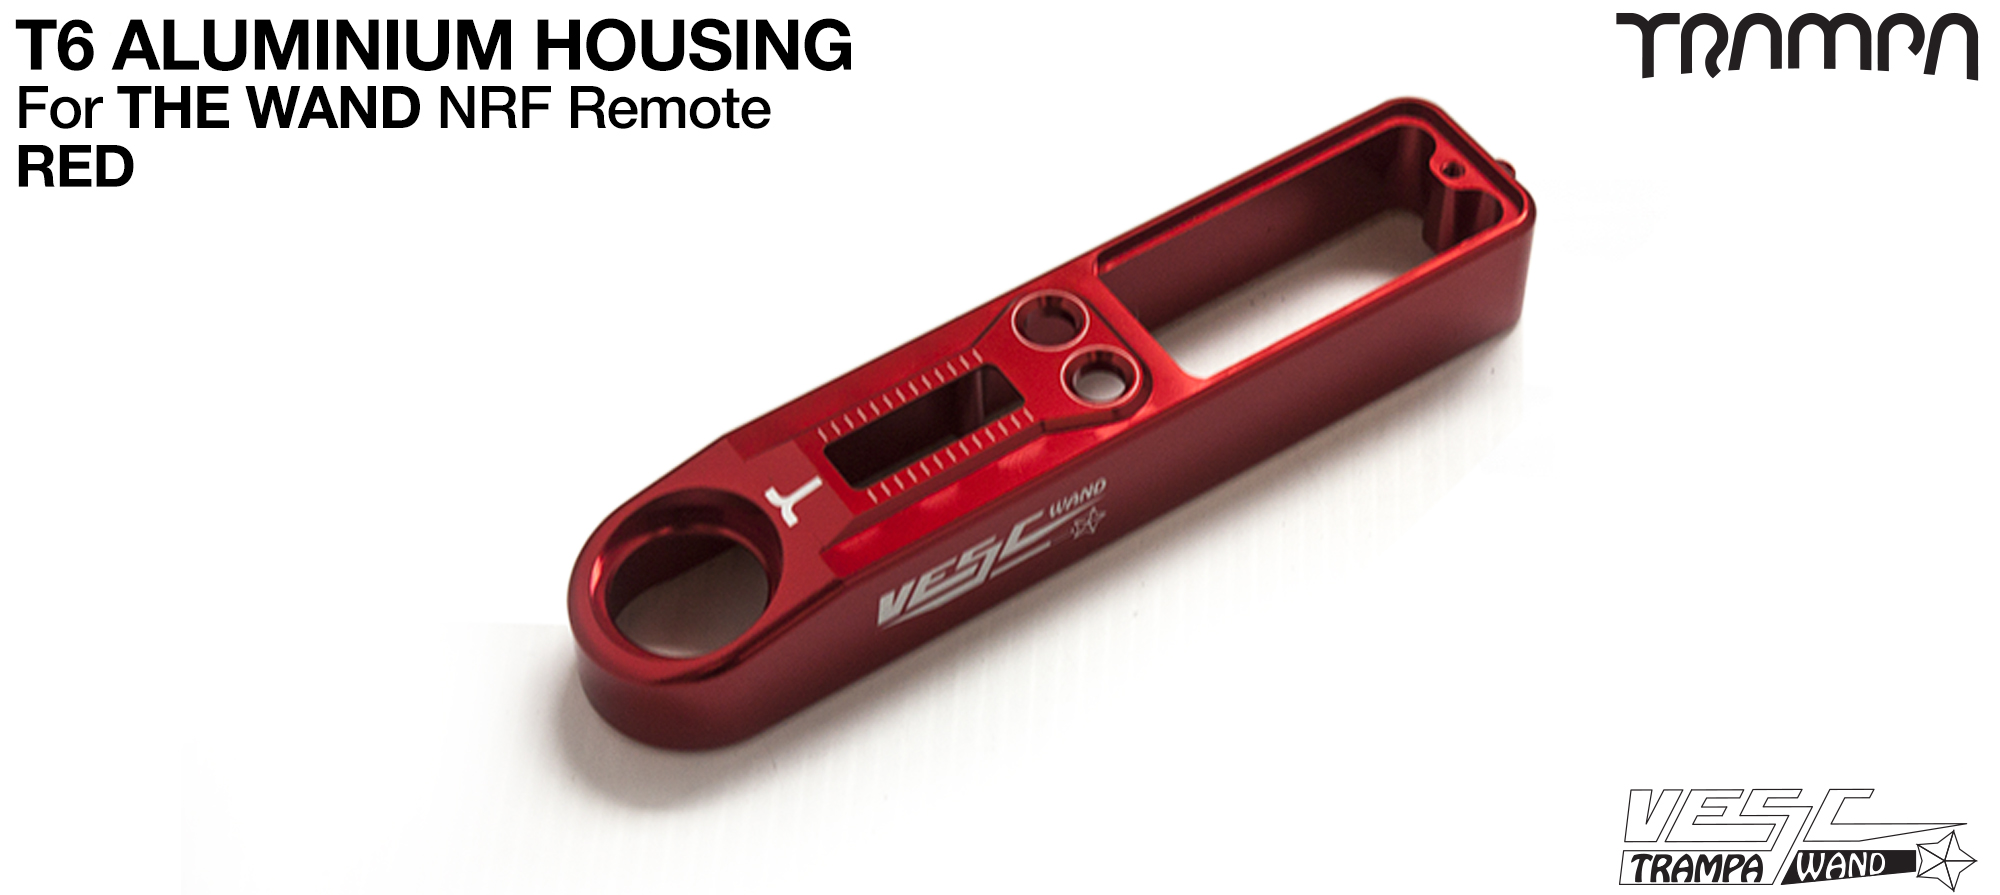 WAND T6 Aluminium Housing - RED Anodised